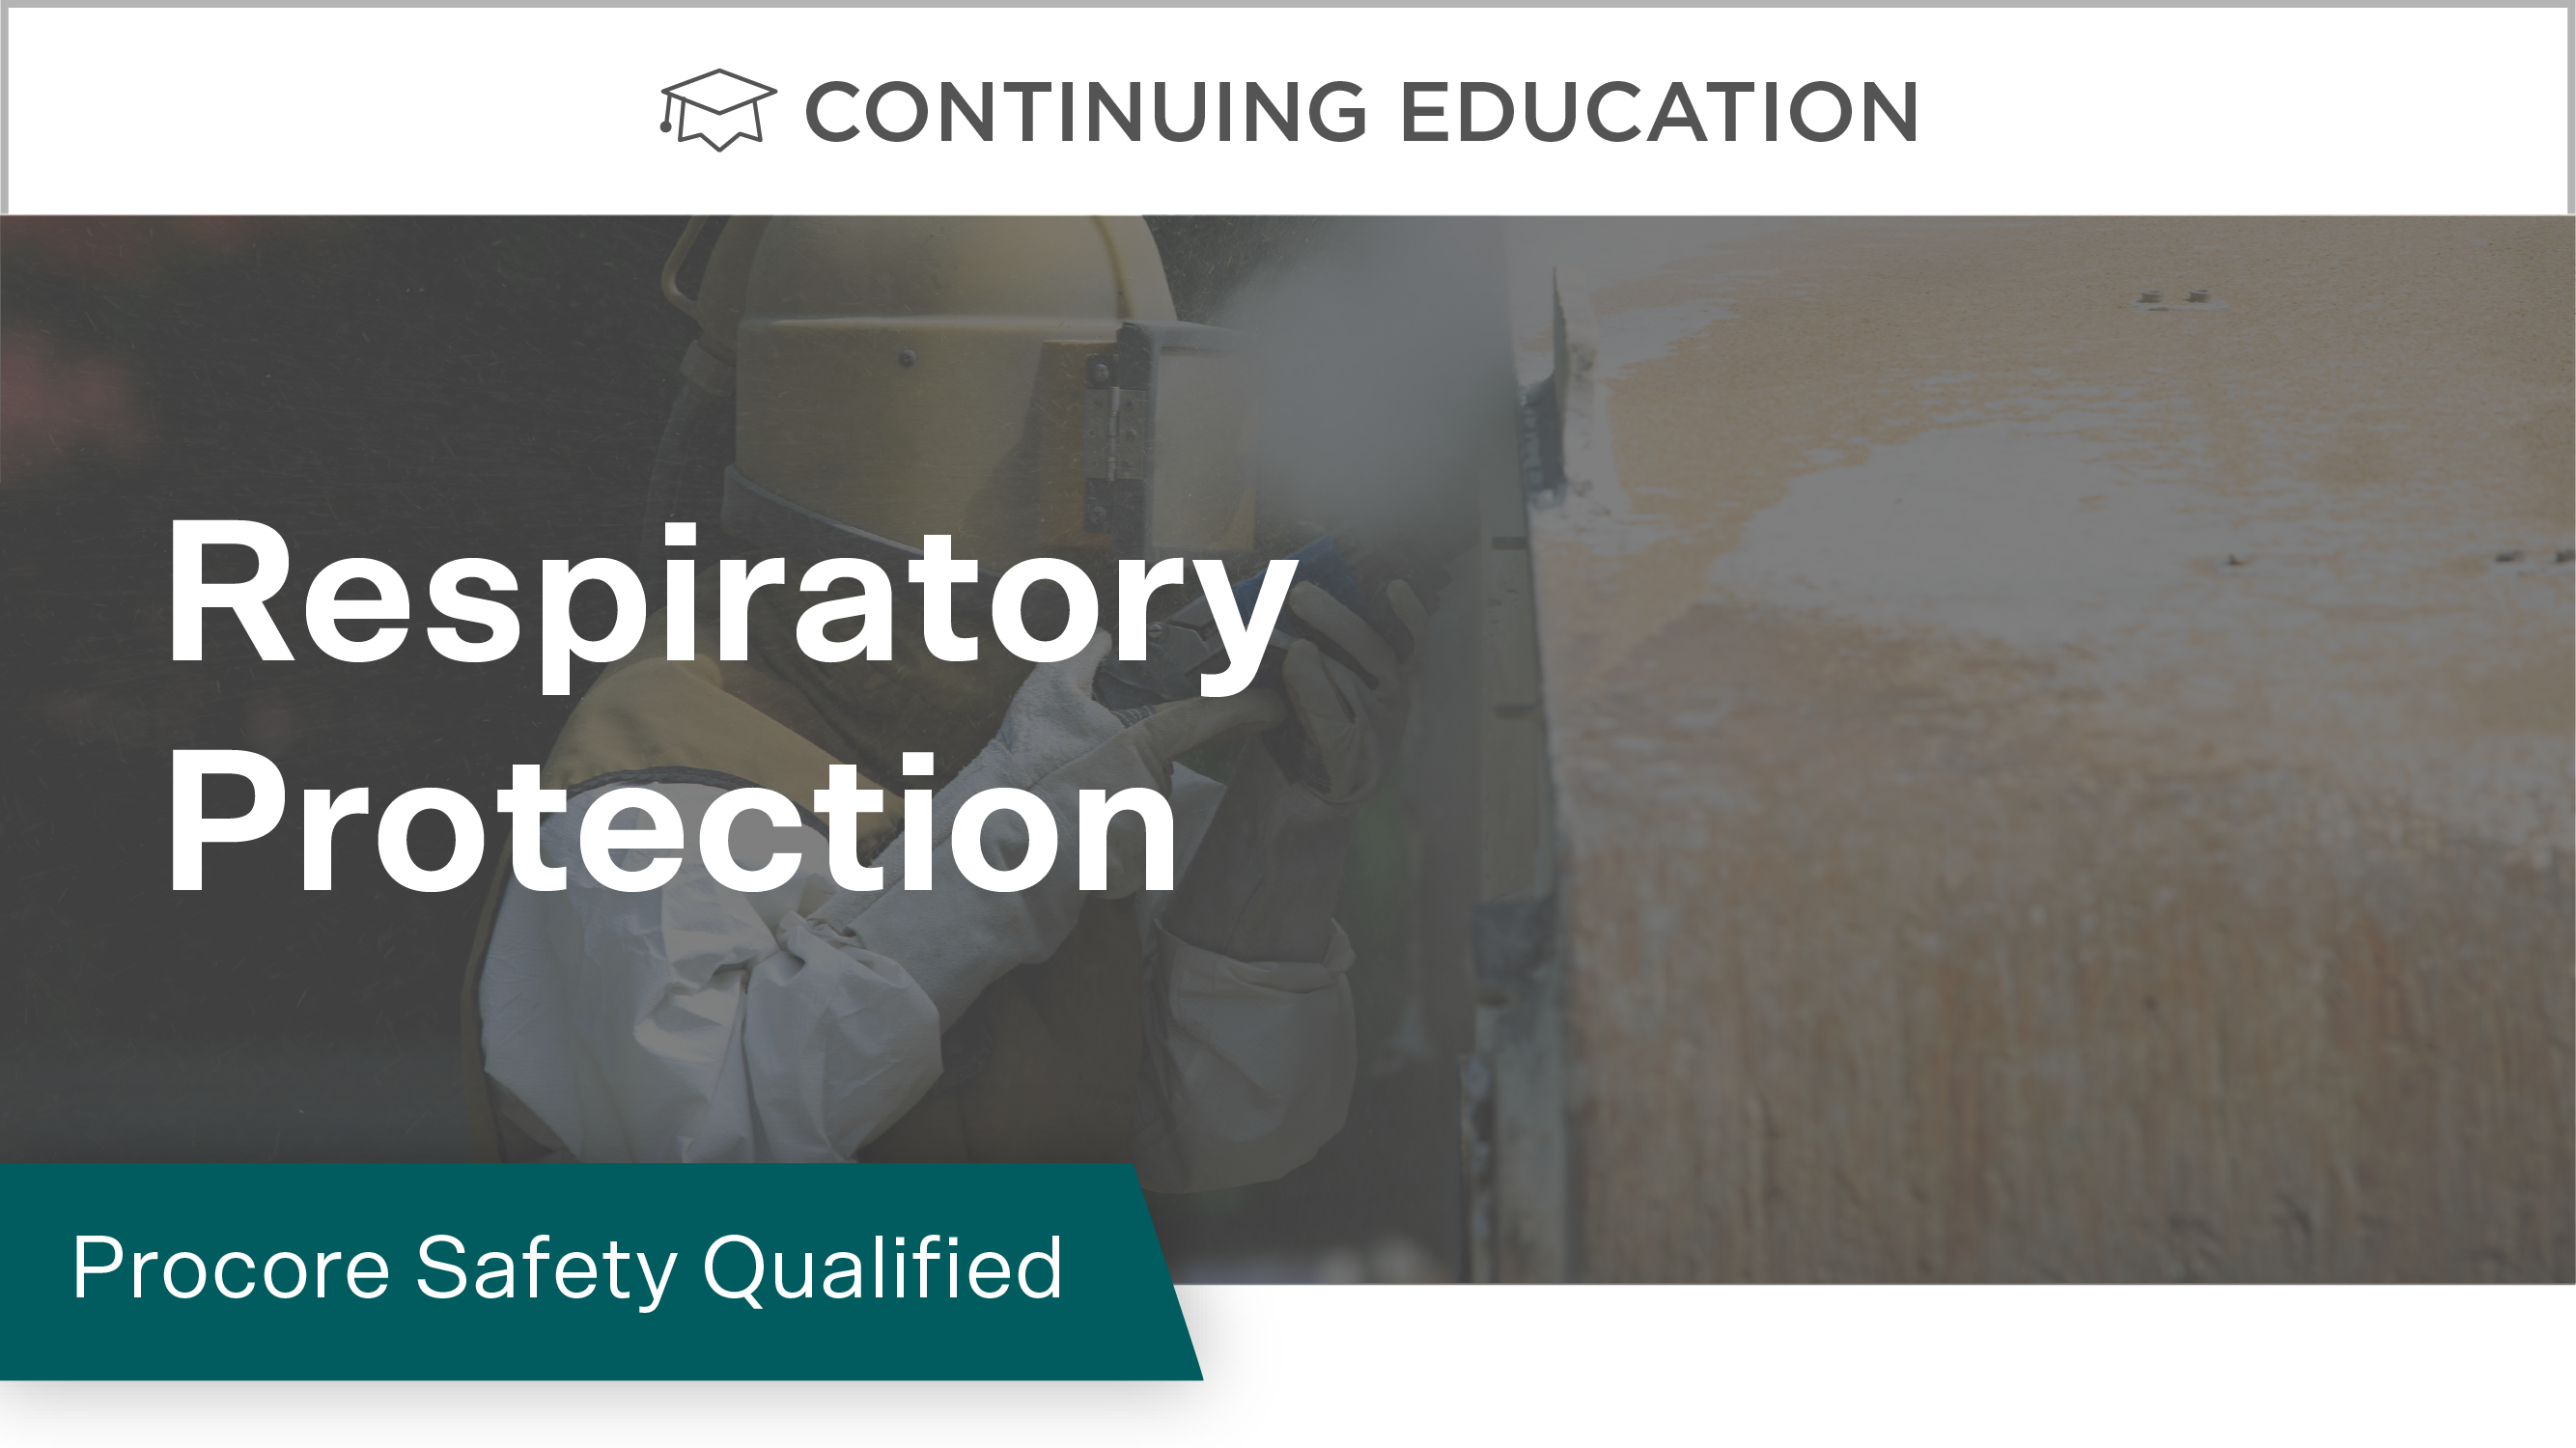 Procore Safety Qualified: Respiratory Protection